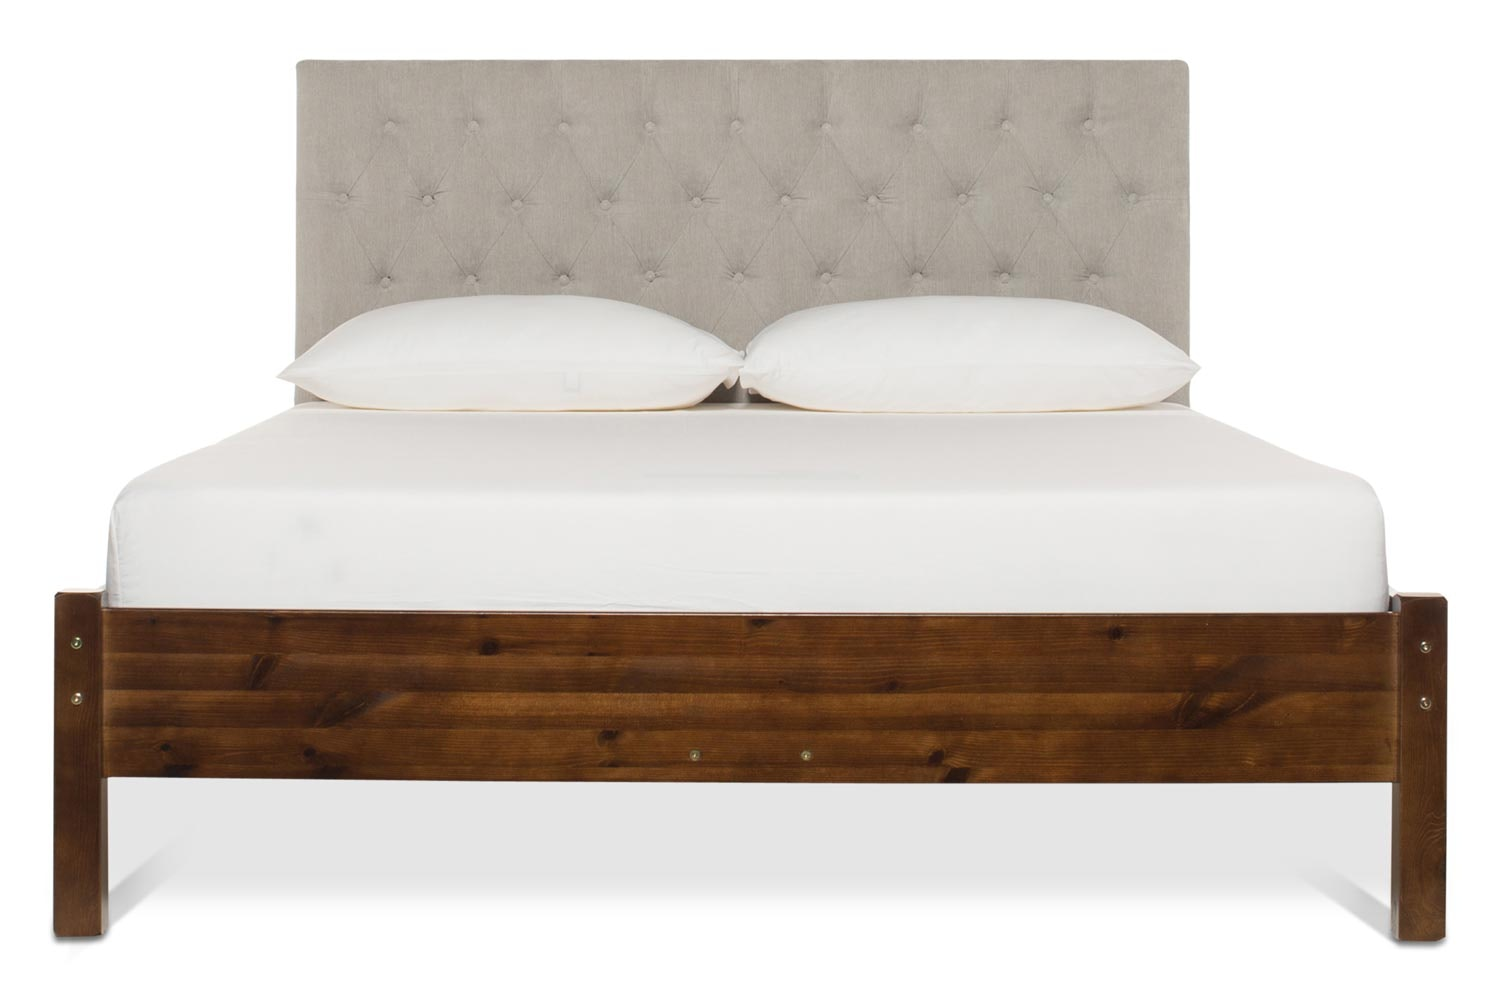 Emily Loft Walnut Bed Frame | 5FT | Marley Headboard Silver